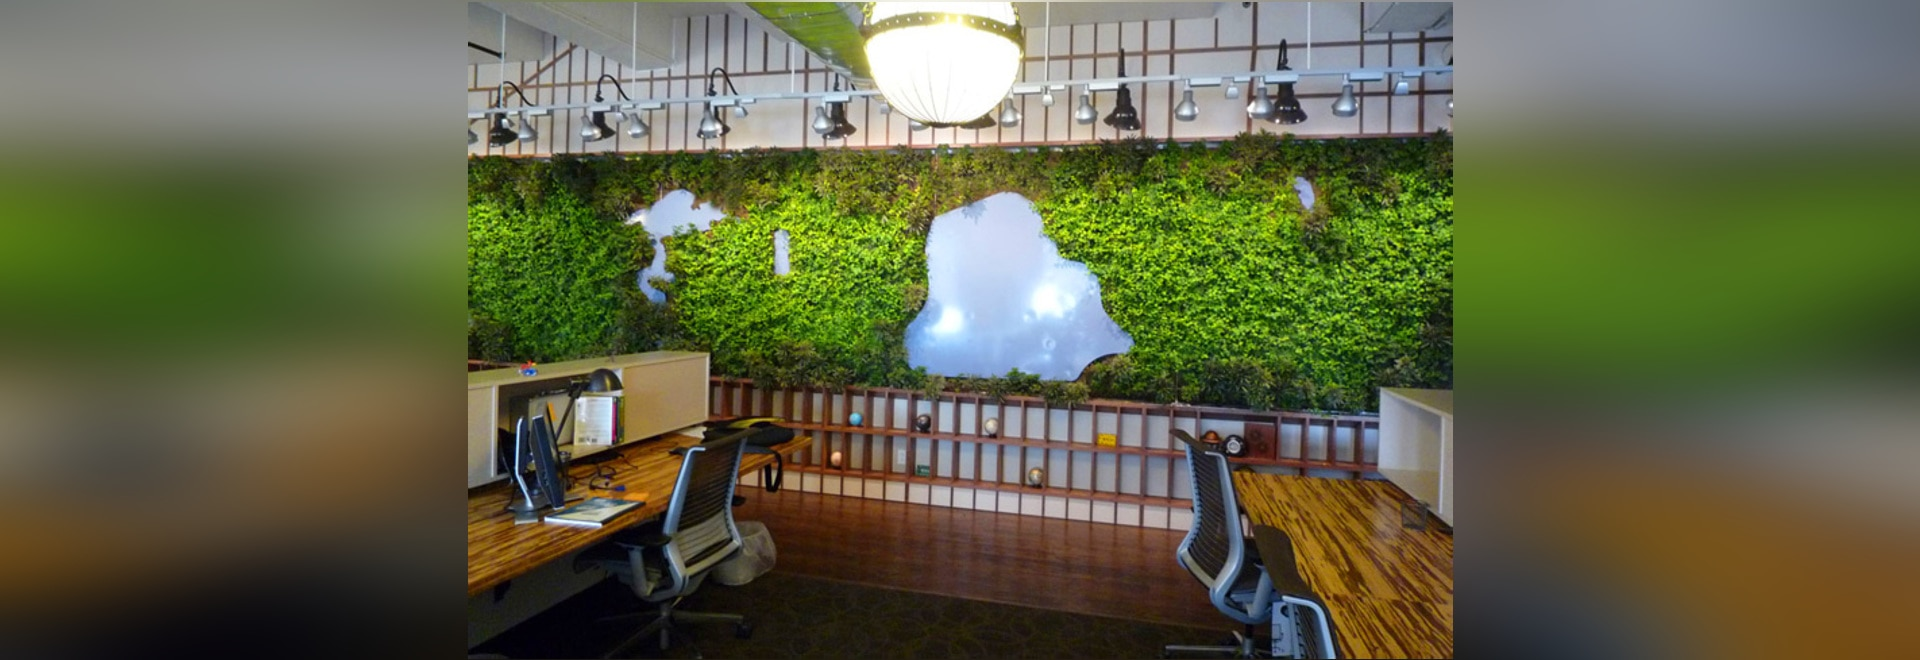 LTL Architects Create A Living Green Wall Shaped Like Central Park For A  NYC Office